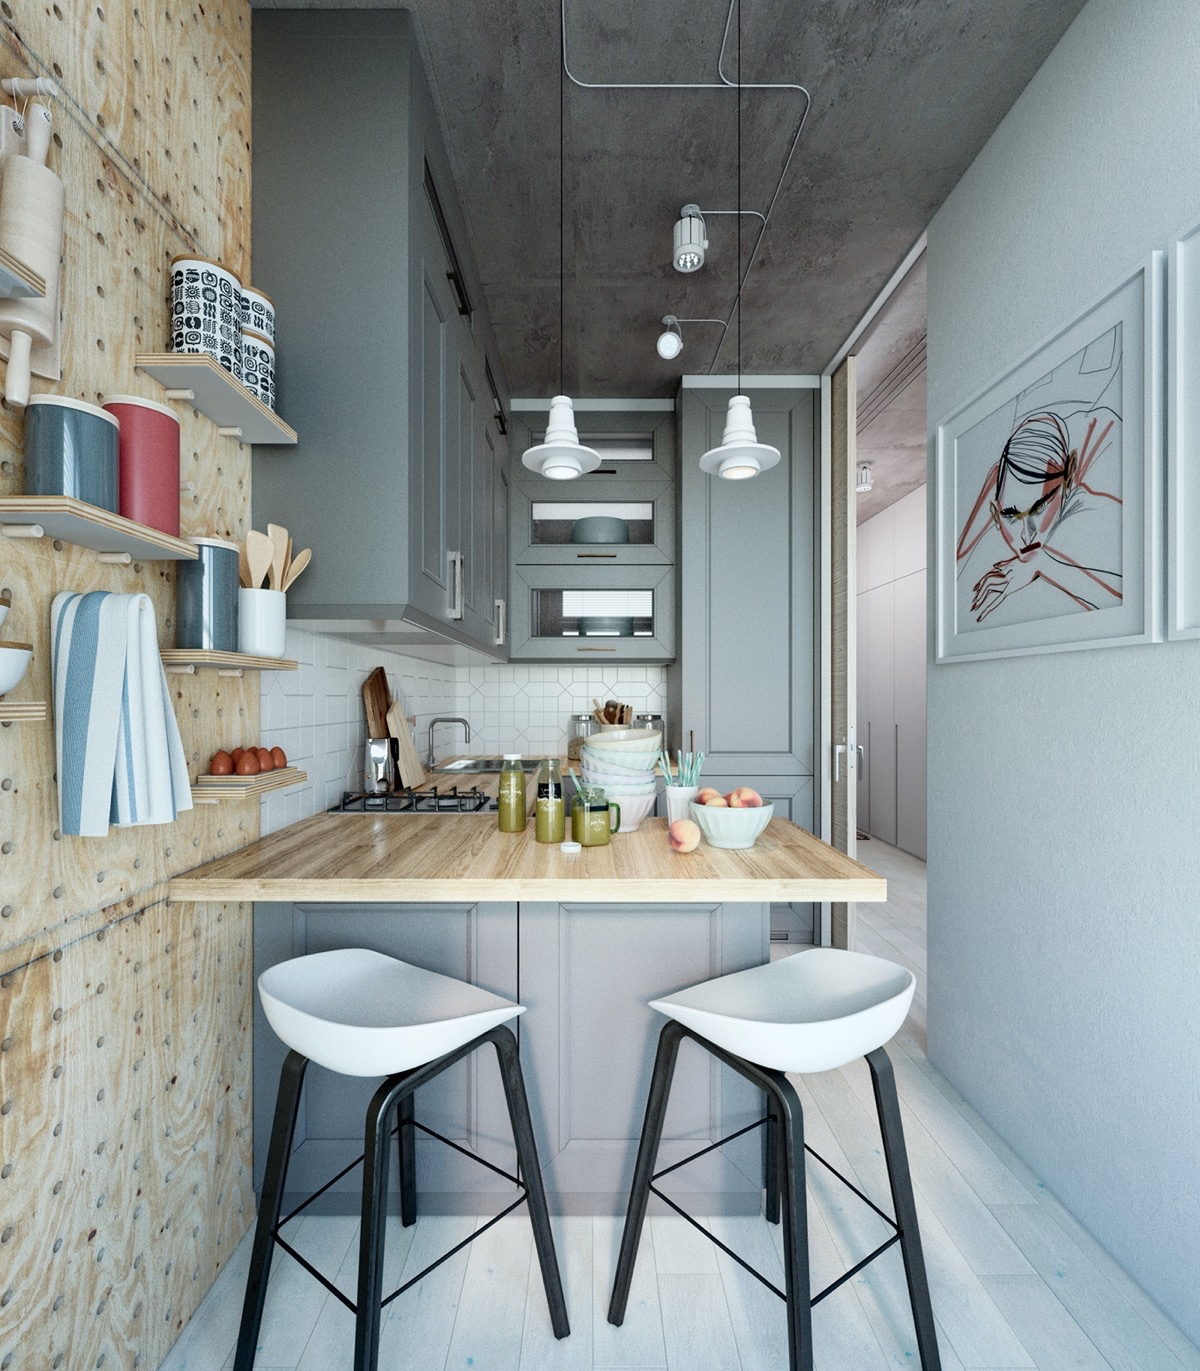 small kitchen interior design small apartment design with scandinavian style that looks charming roohome 6896